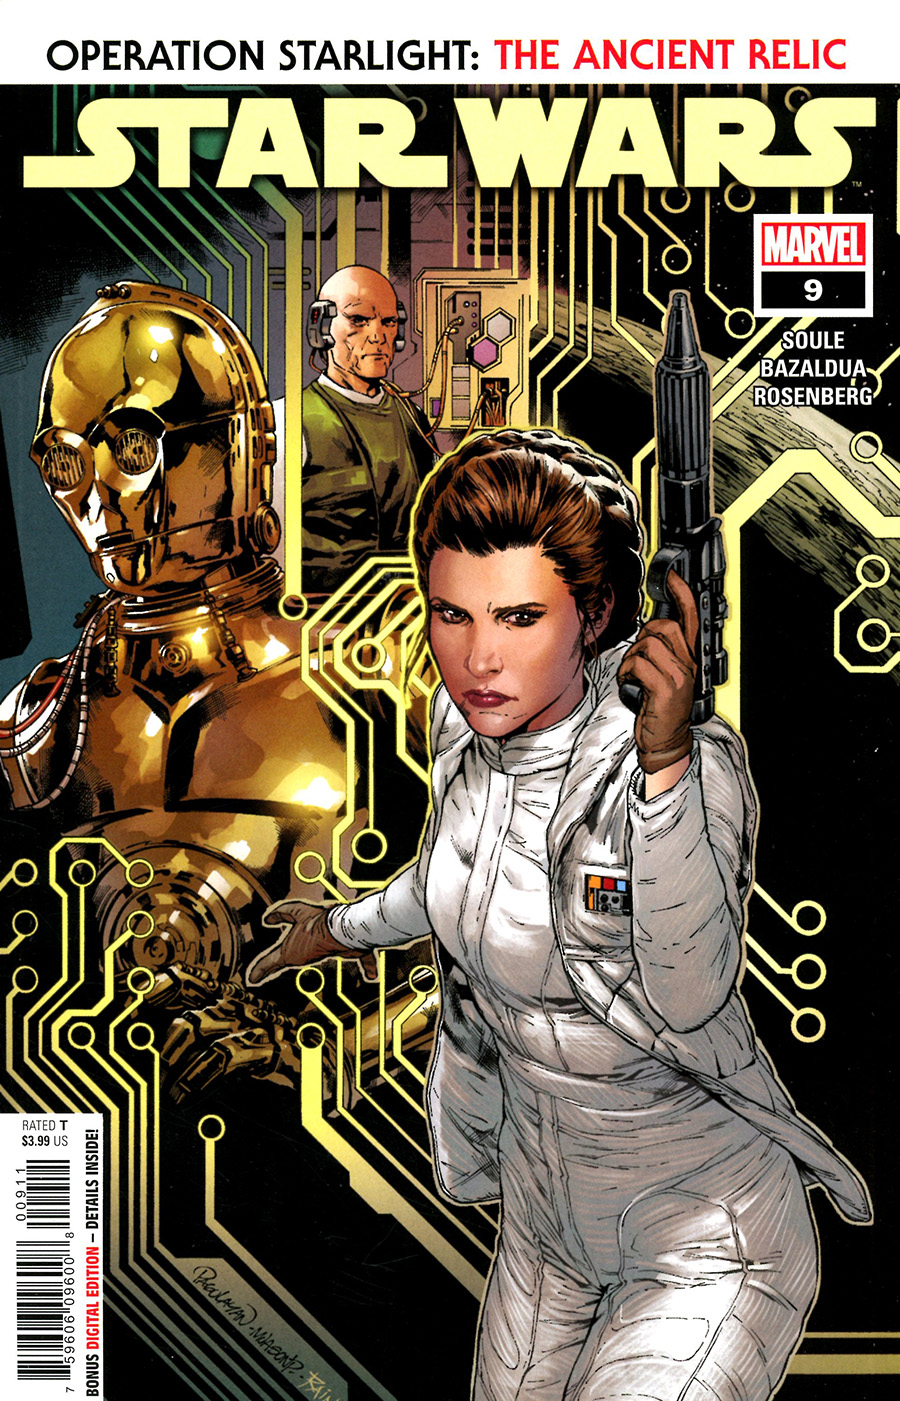 Star Wars Vol 5 #9 Cover A Regular Carlo Pagulayan Cover